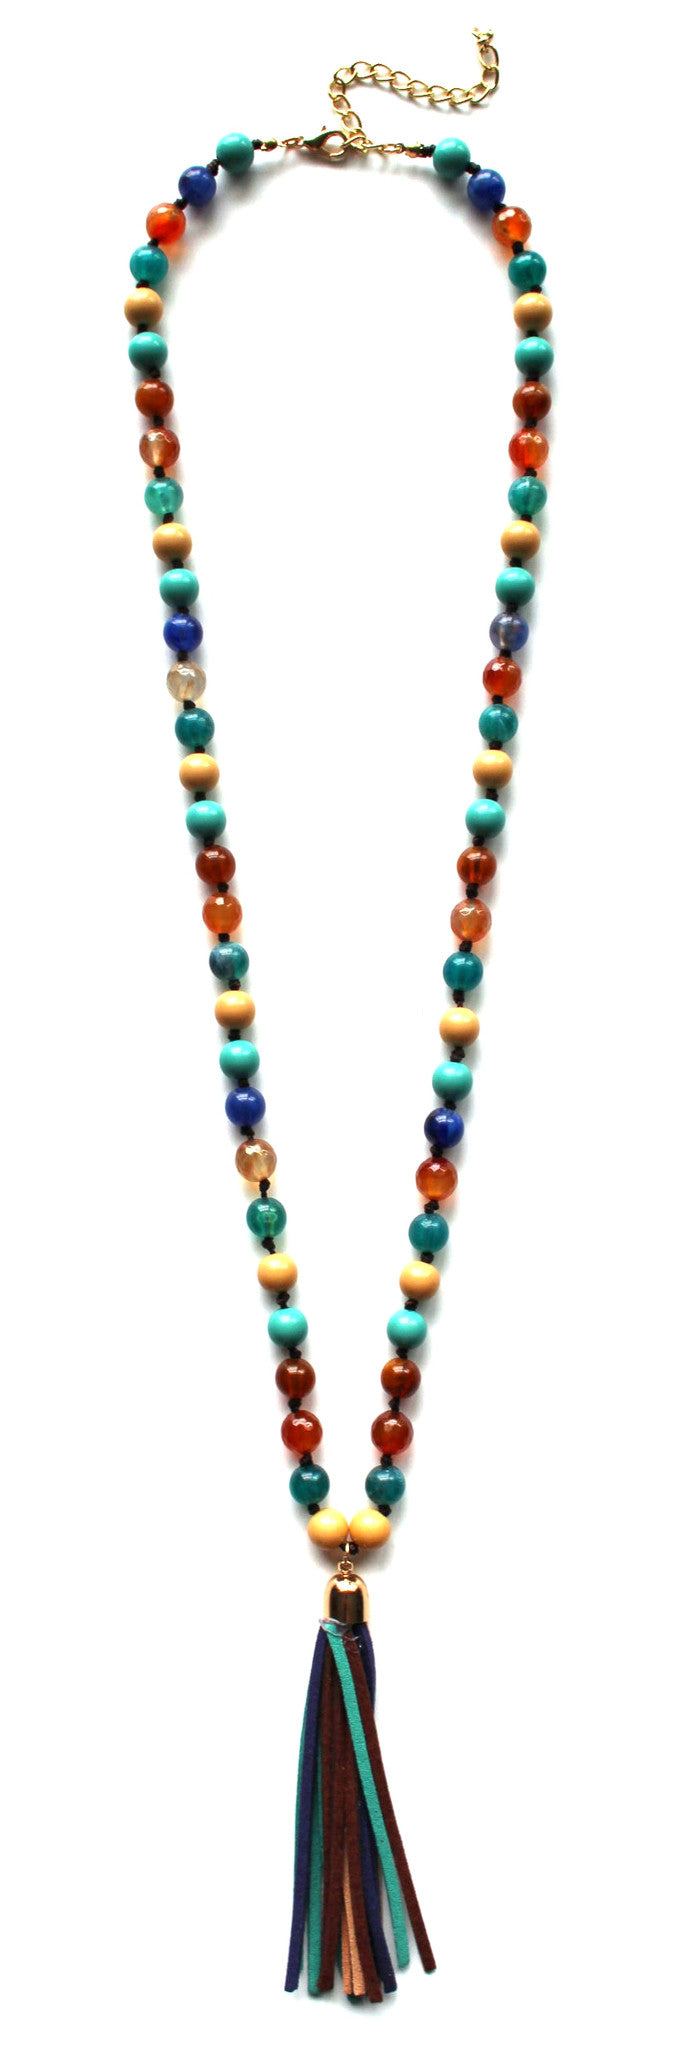 Colorful Beads & Tassels Necklace- Multi Turquoise